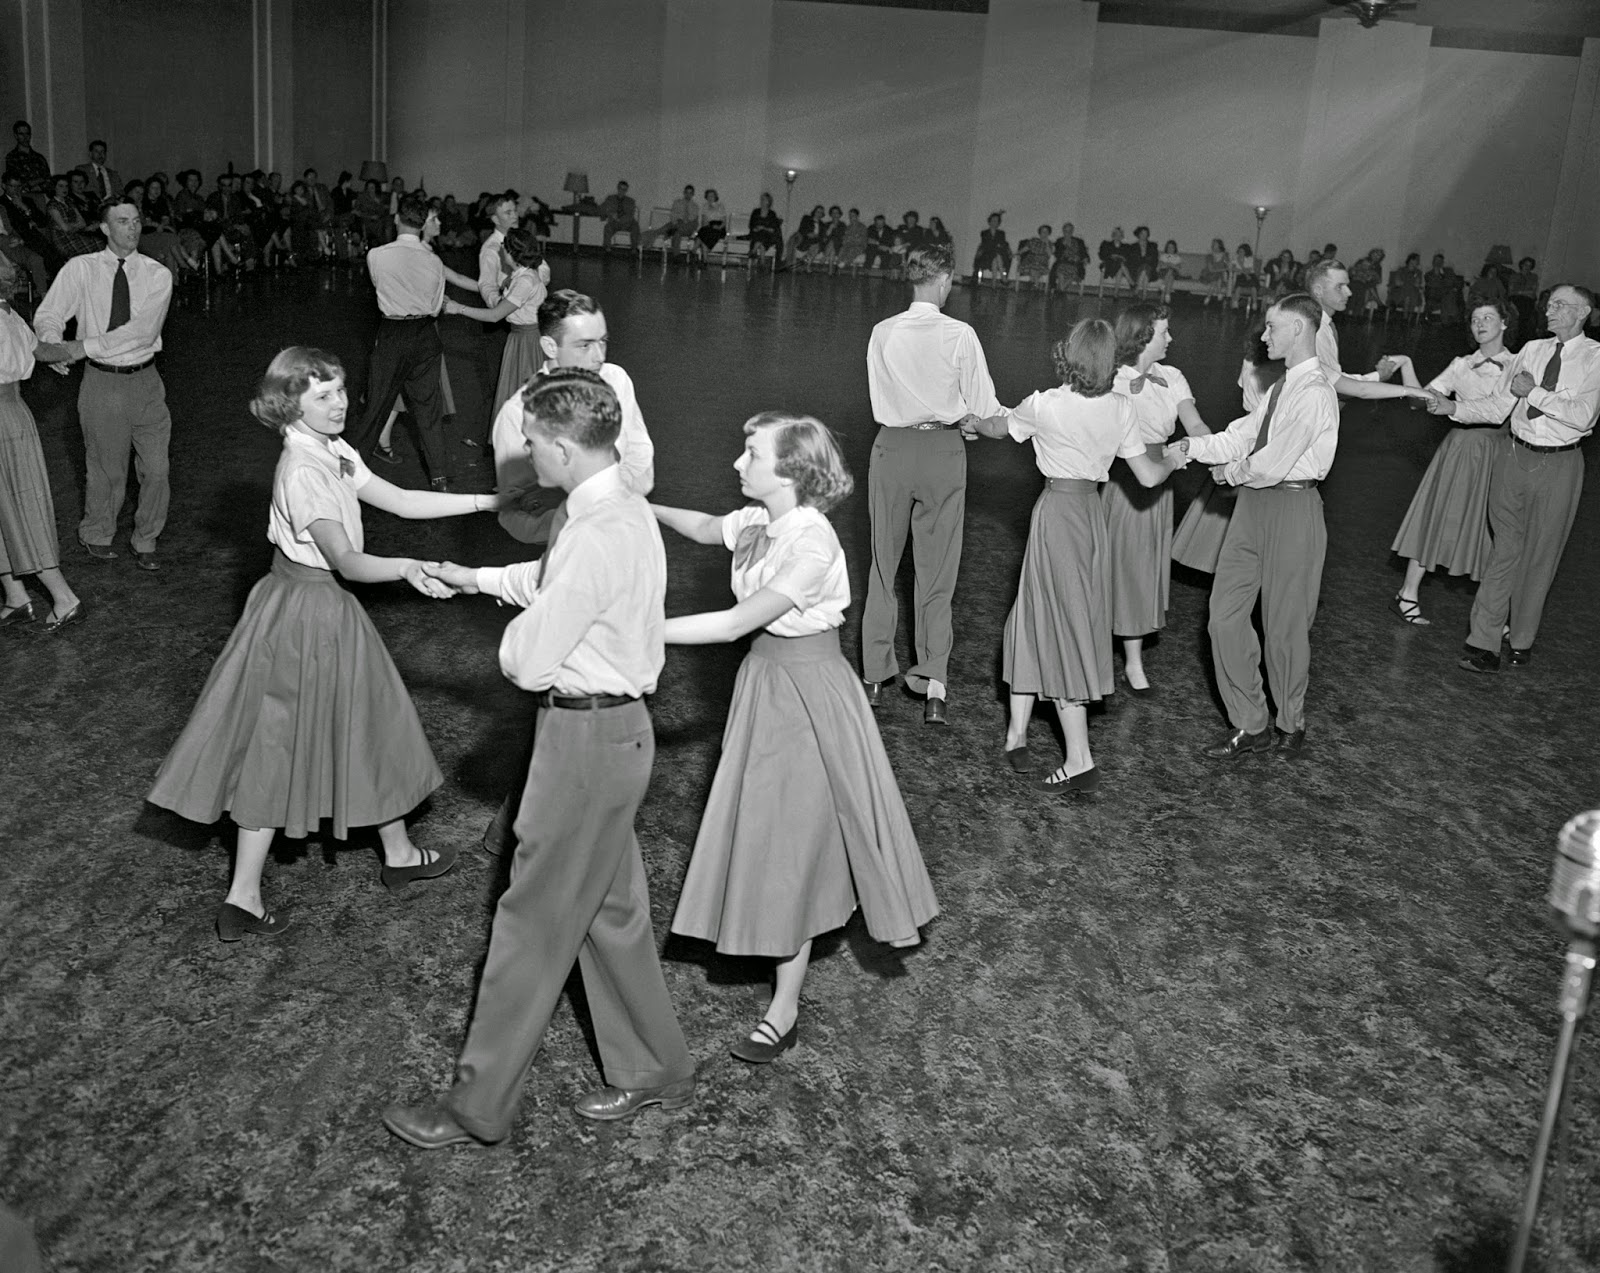 Where did square dancing originated